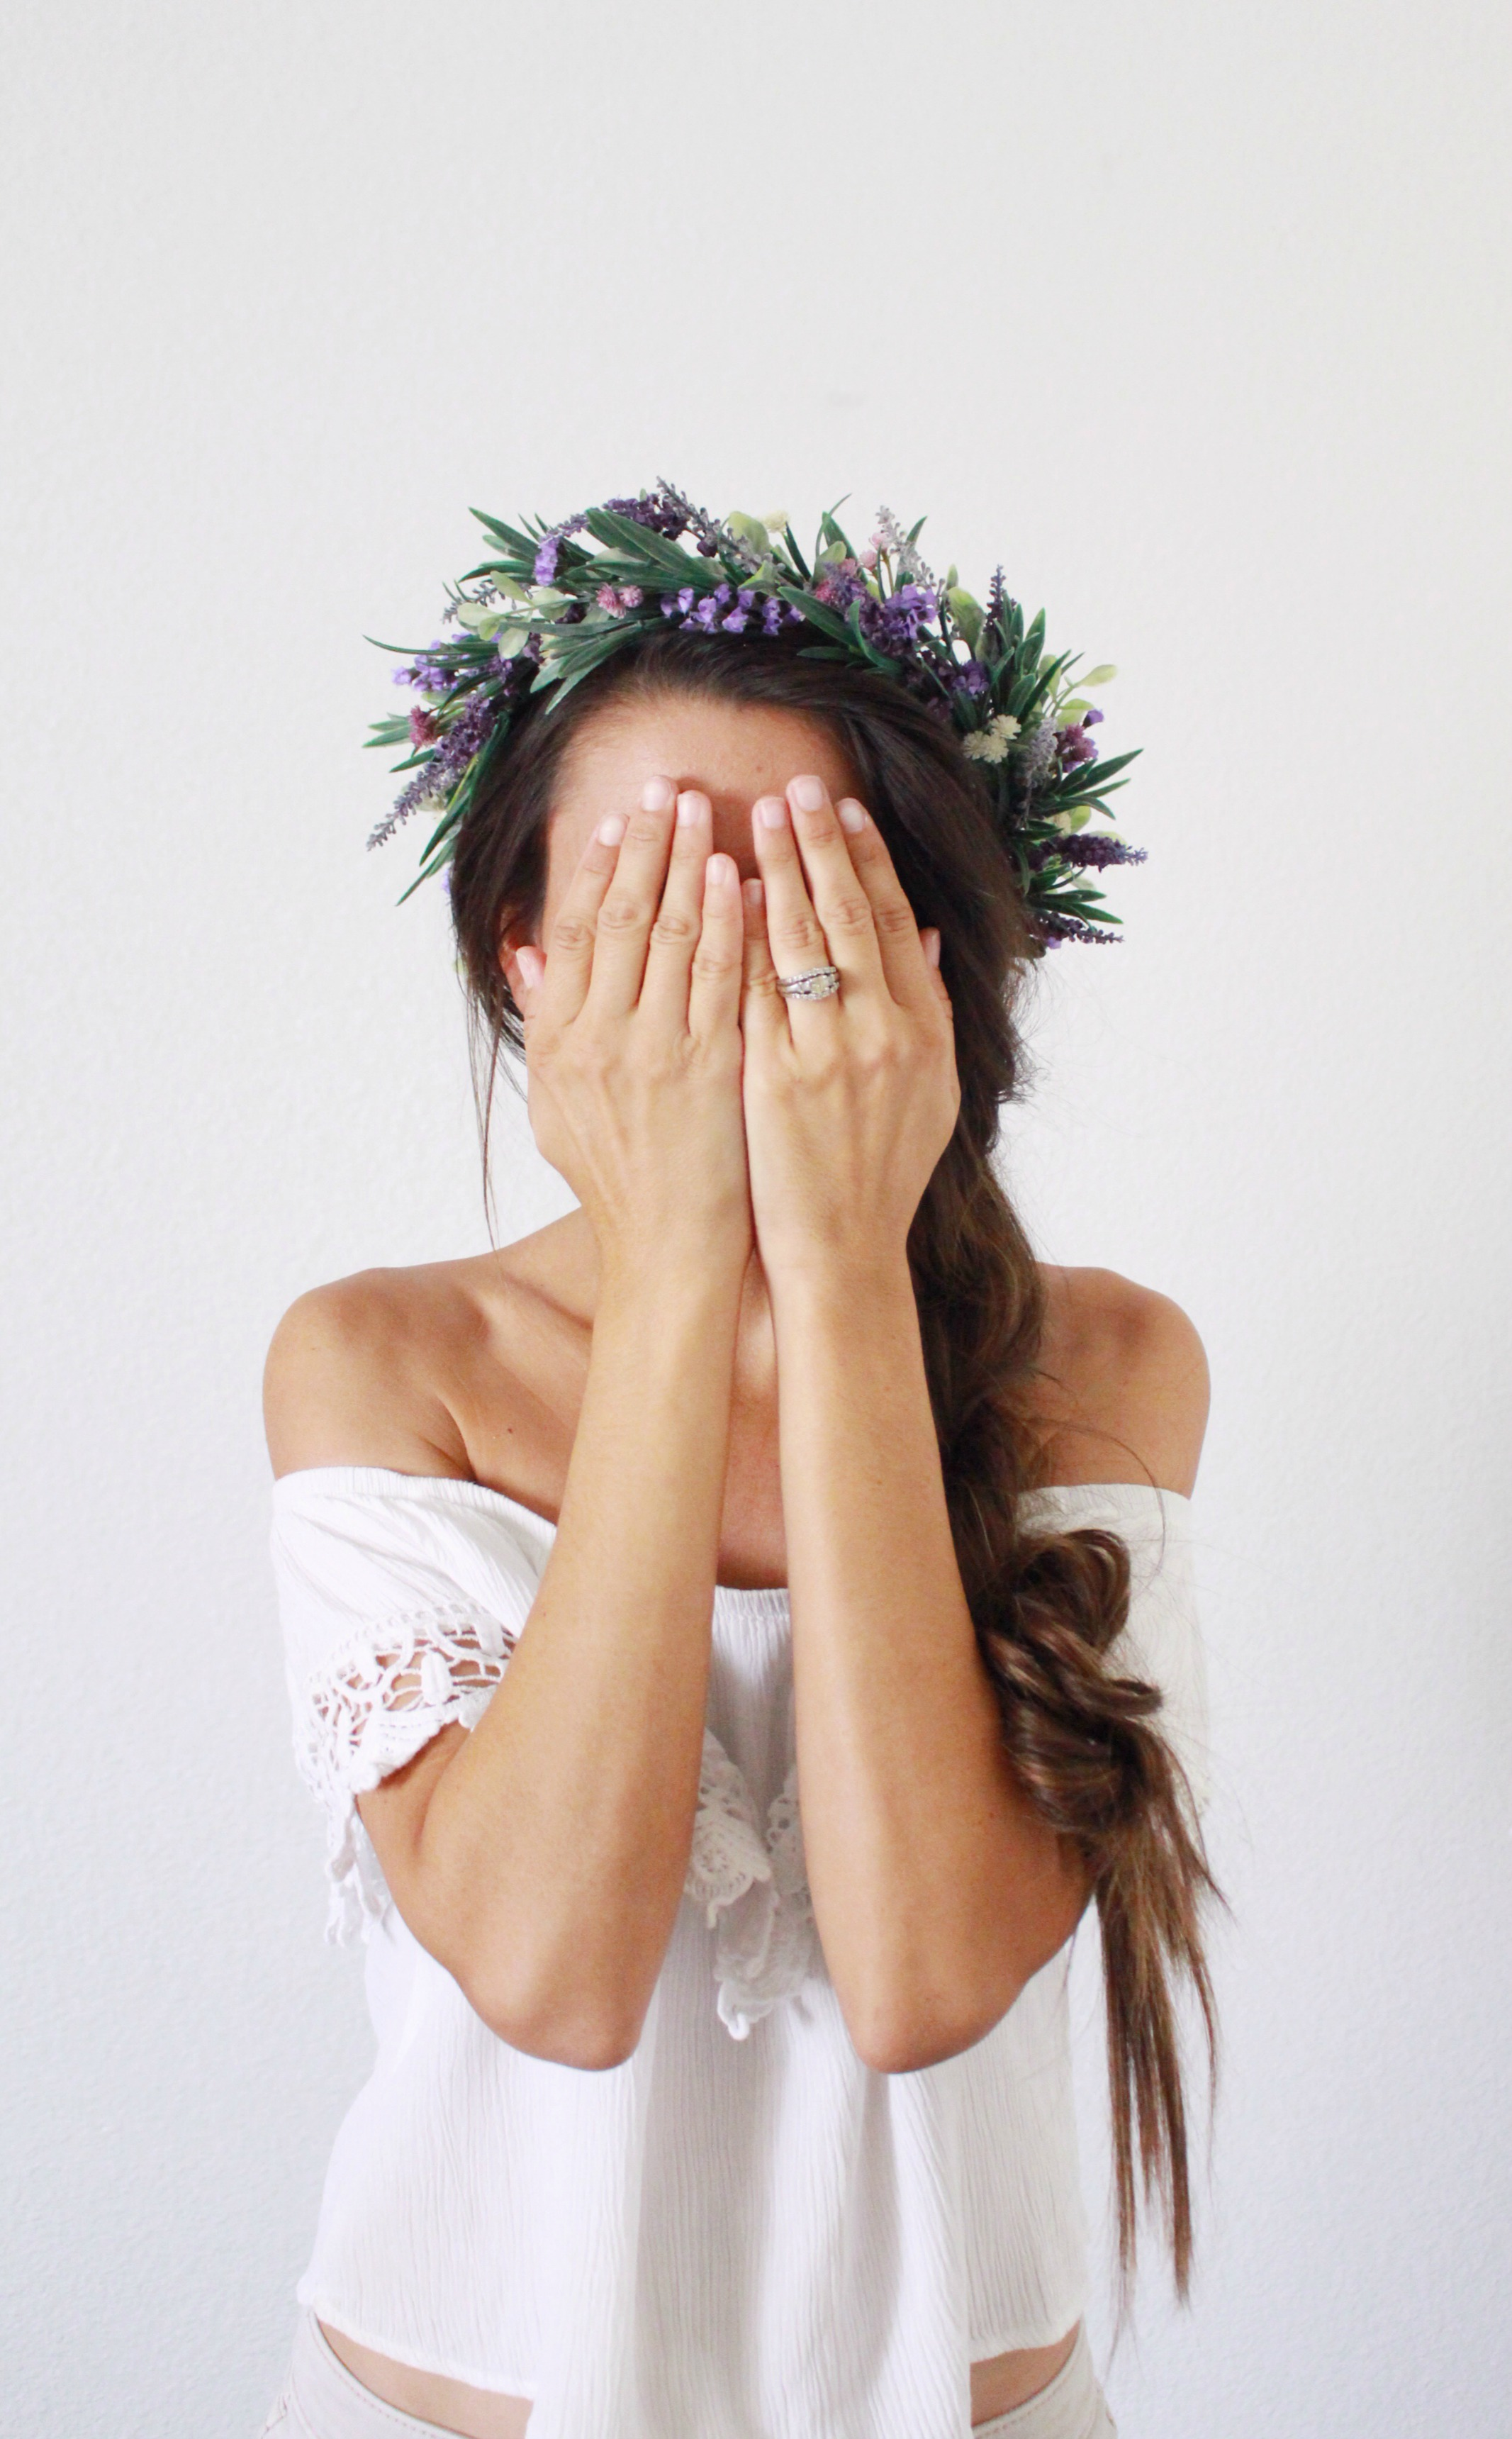 braided hairstyle with flower crown. diy lavender flower crown. flower crown style. hairstyle. long hair floral crown.